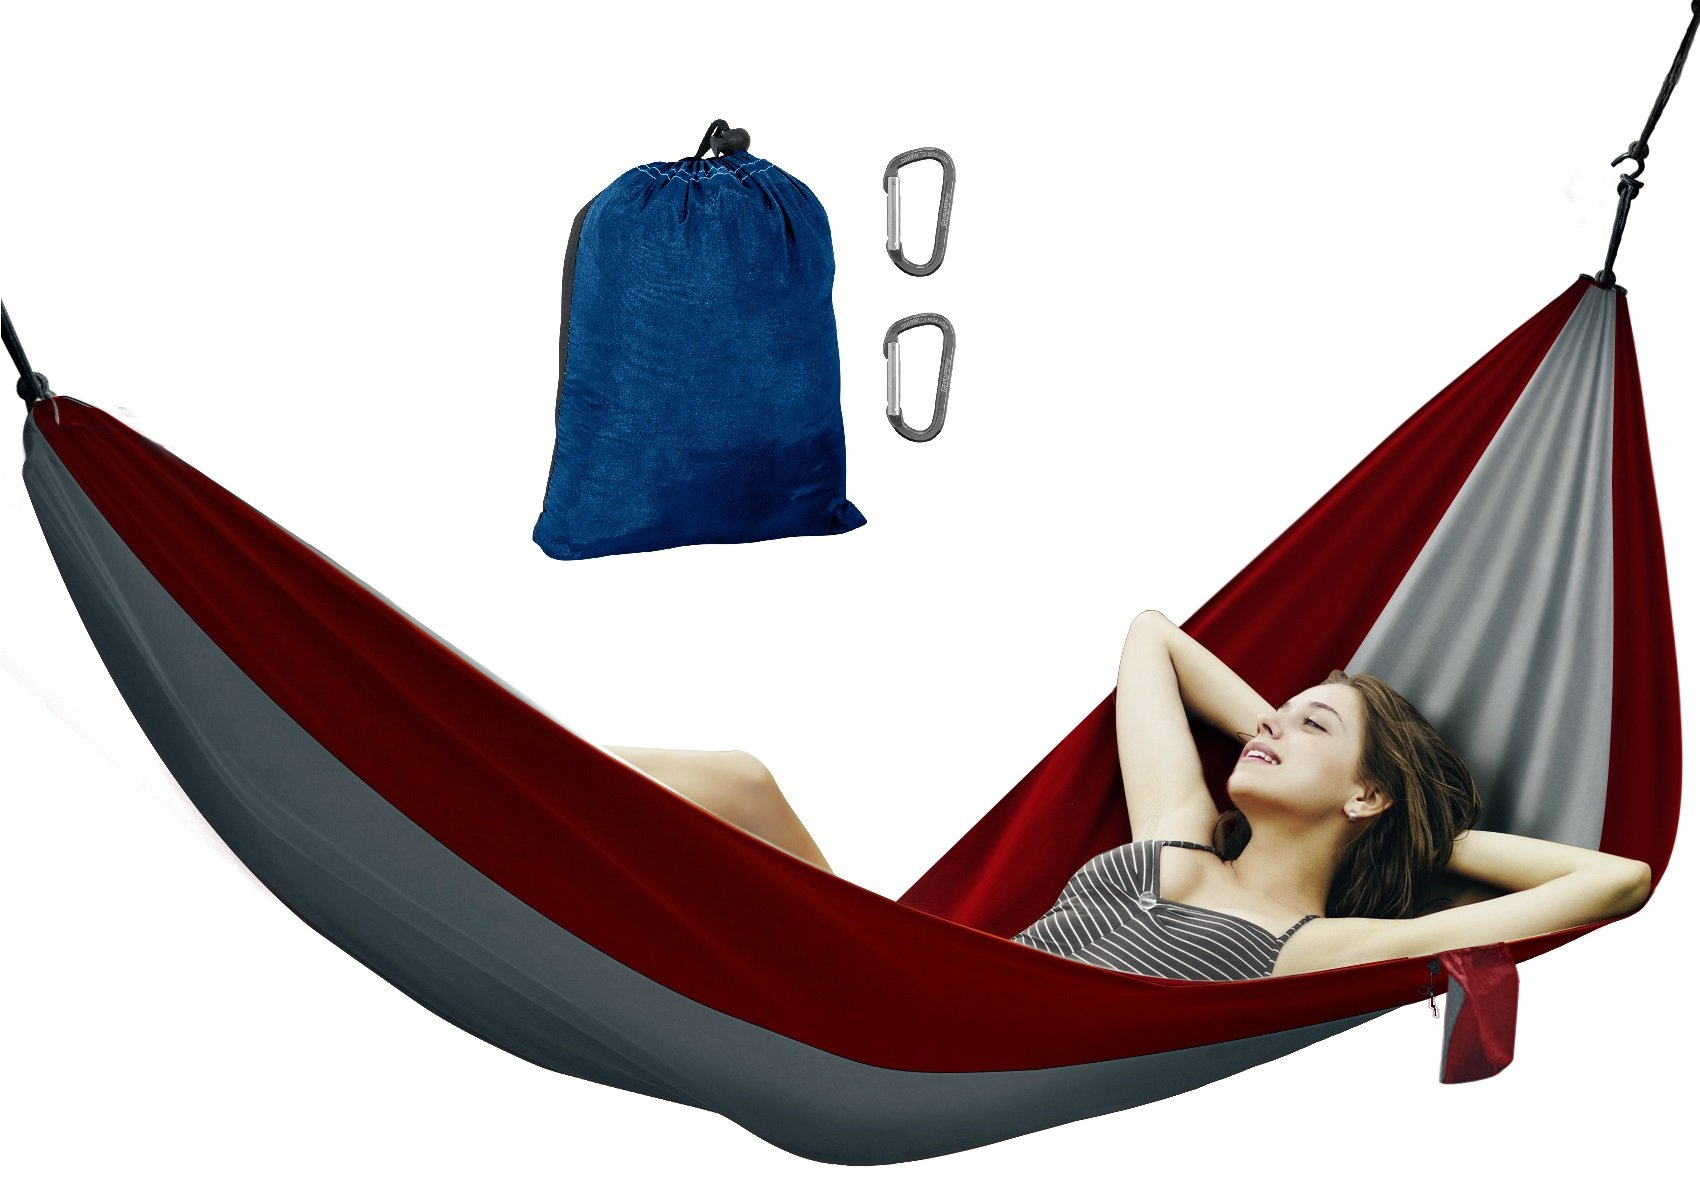 Avalanche Hammock Portable Single or Double Parachute Lightweight Strong Enforced Nylon Includes 2 Carabiners (Red, Single Person) by Avalanche